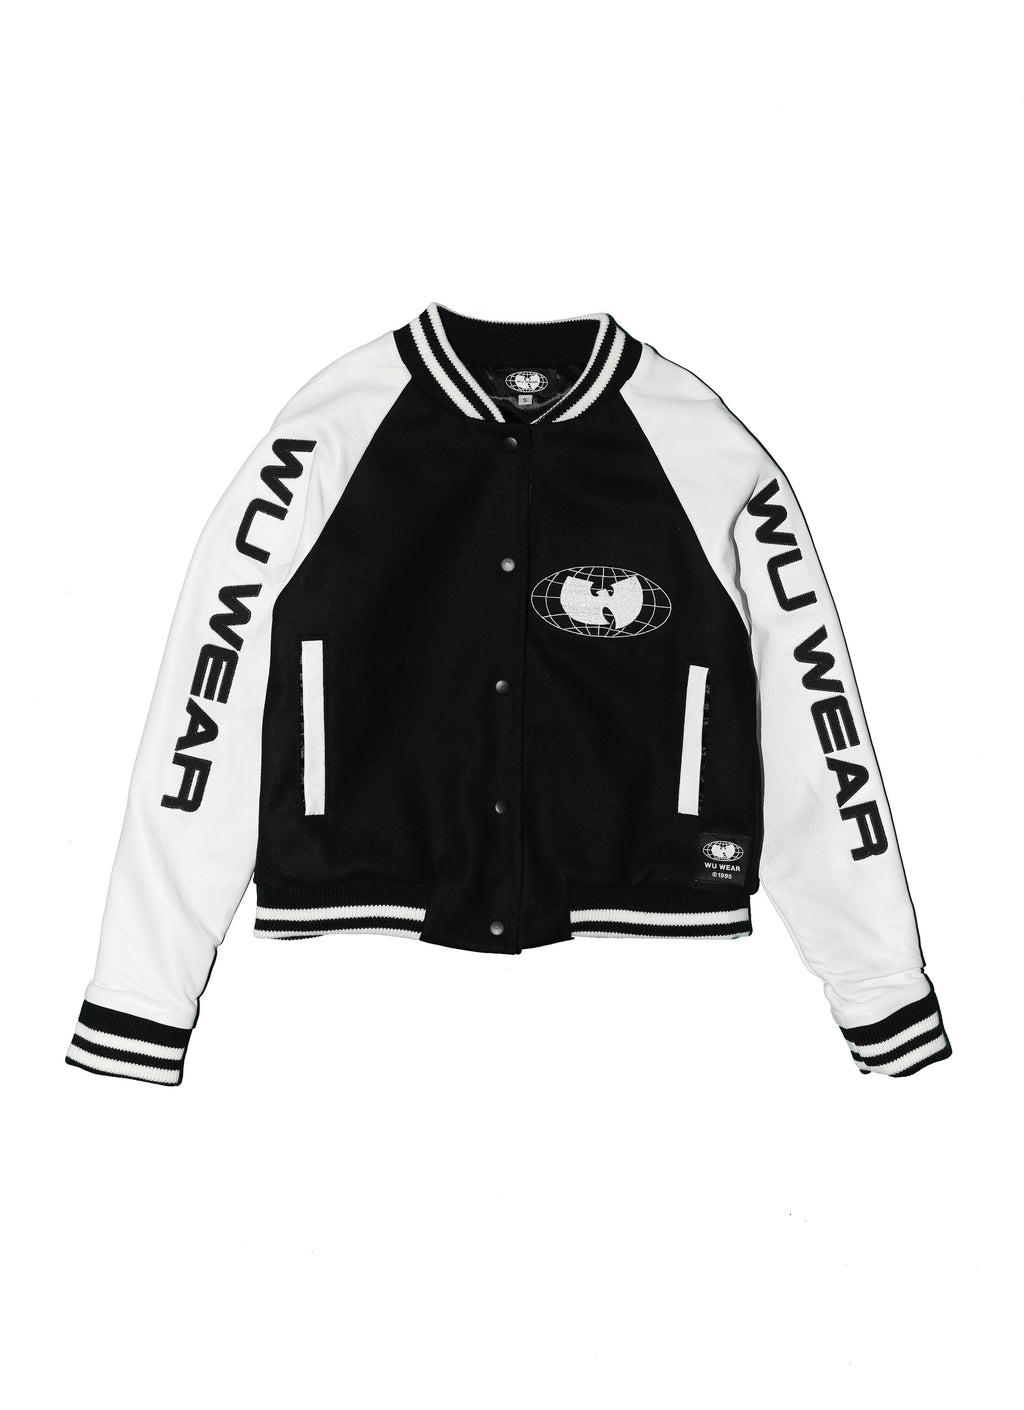 WU WEAR VARSITY JACKET - BLACK AND WHITE - Wu Wear